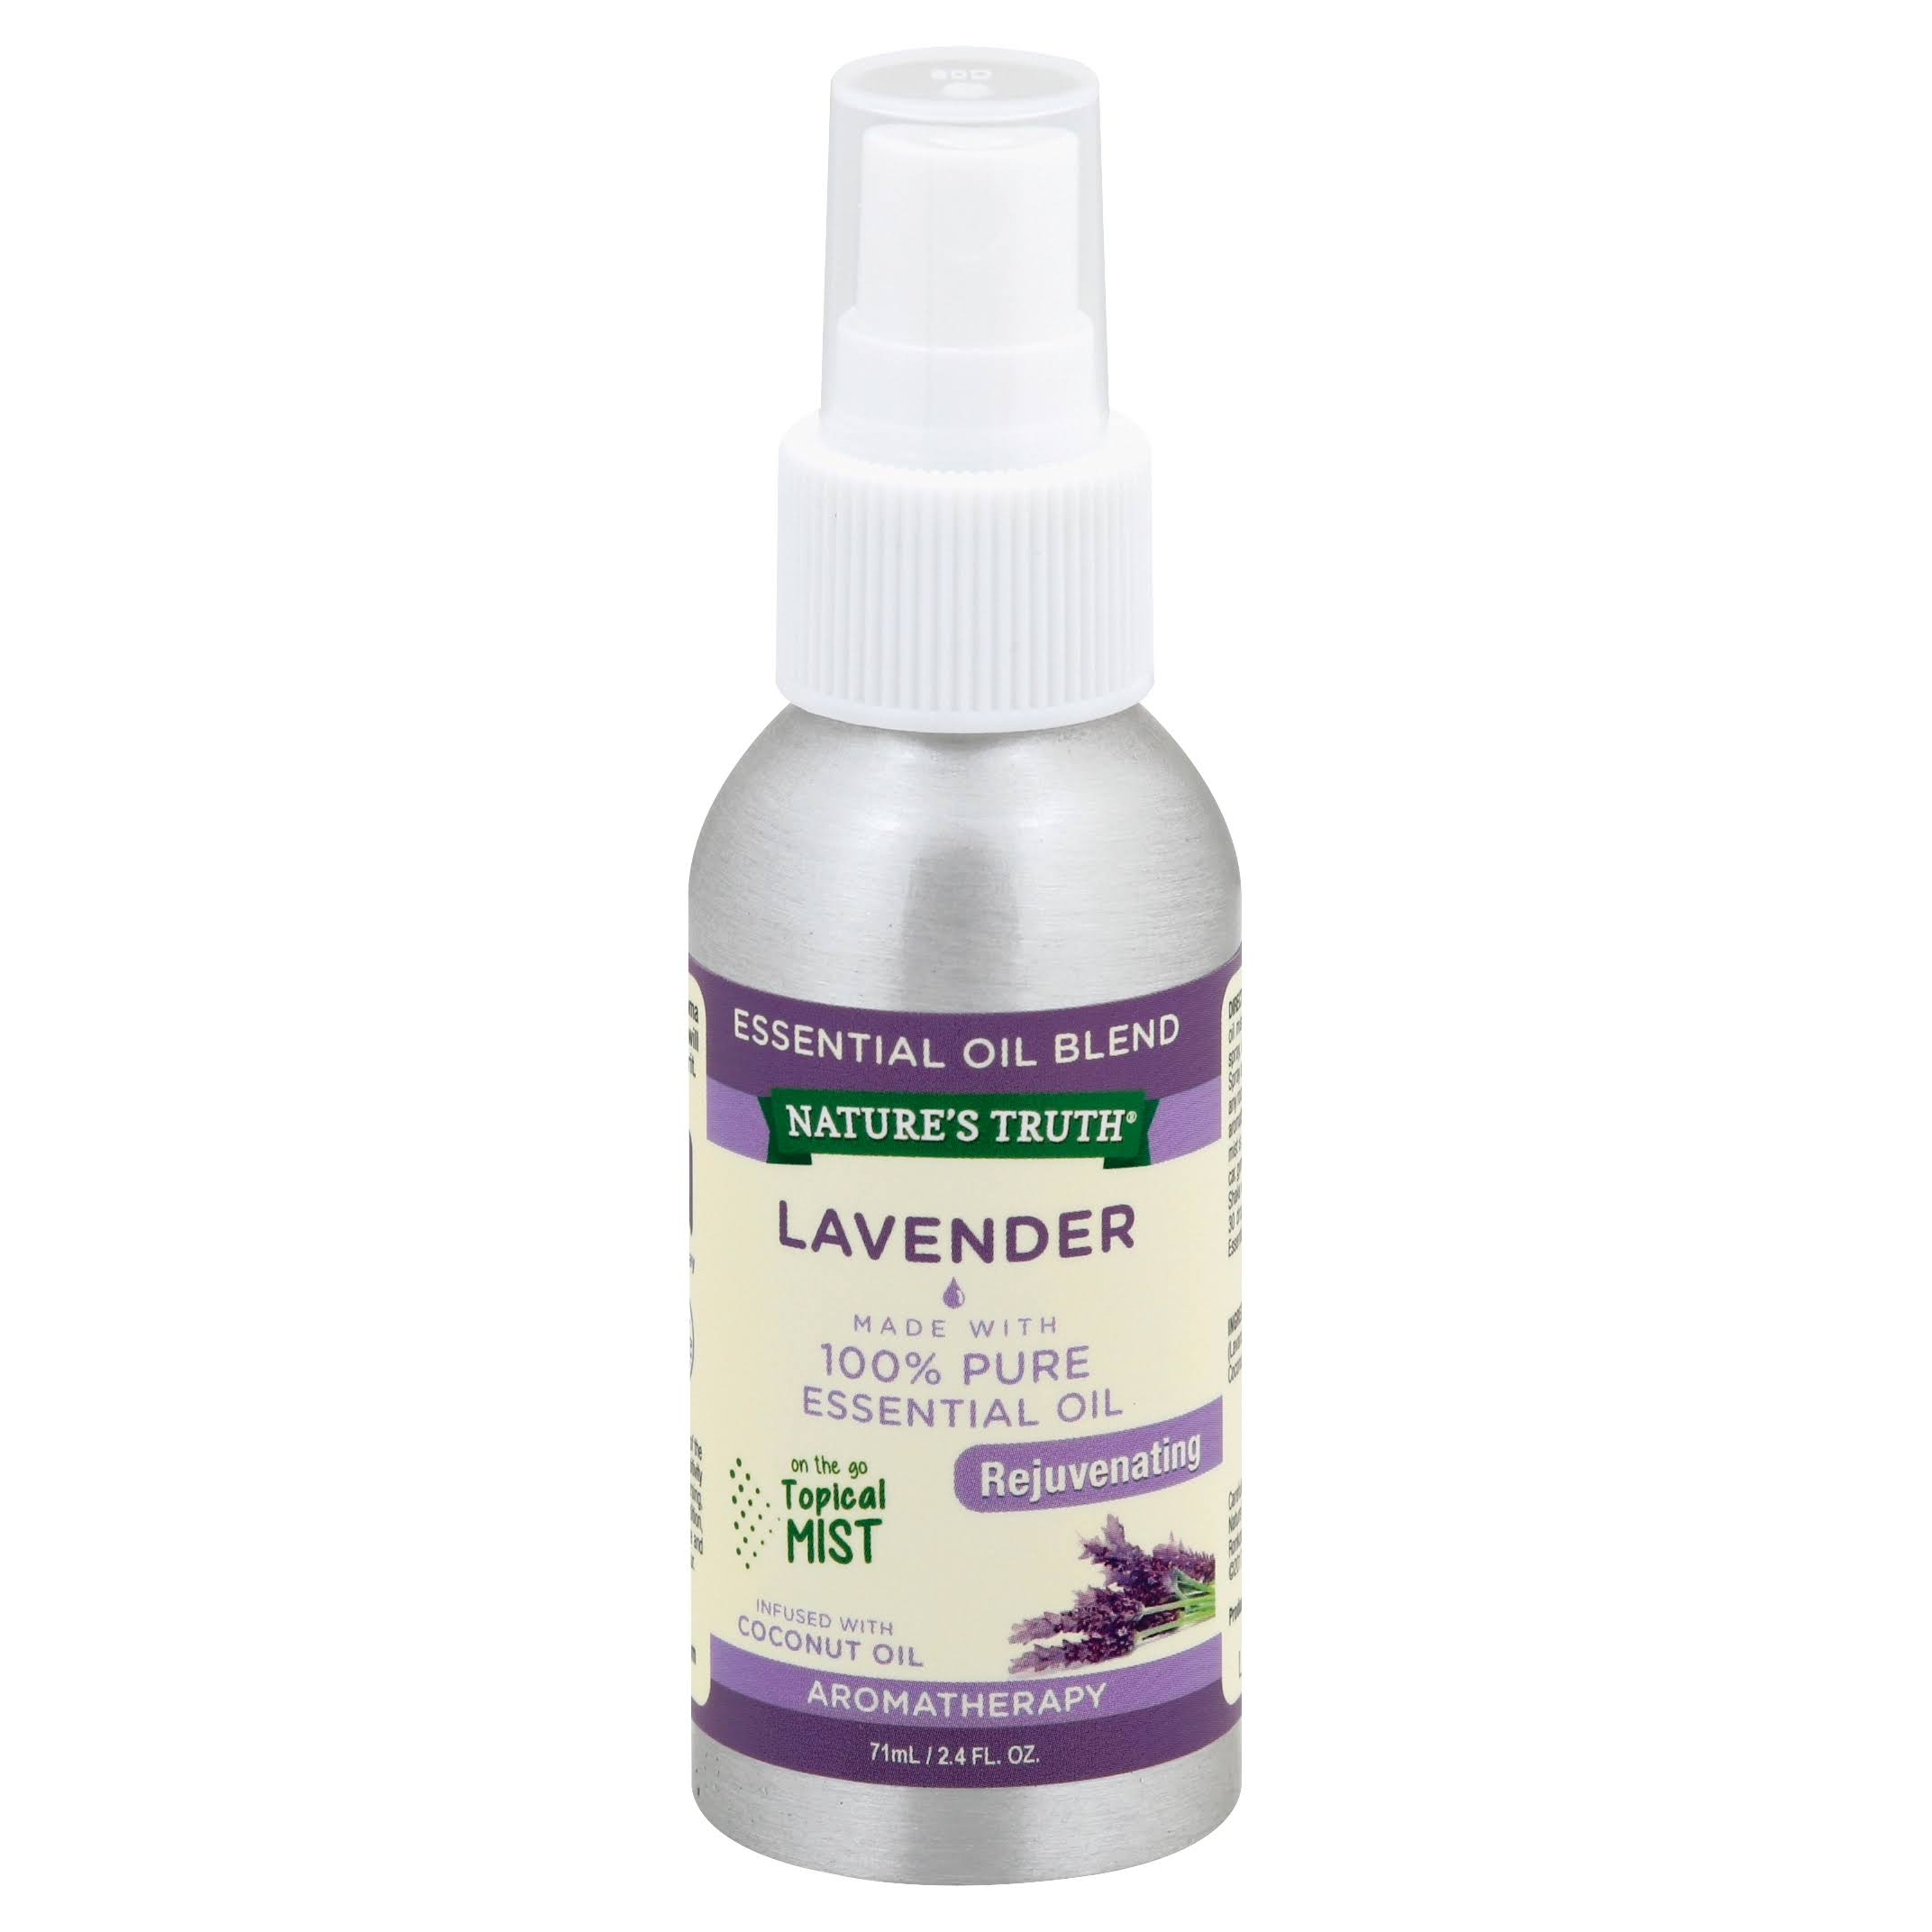 Nature's Truth Rejuvenating Lavender Mist Spray - 2.4oz